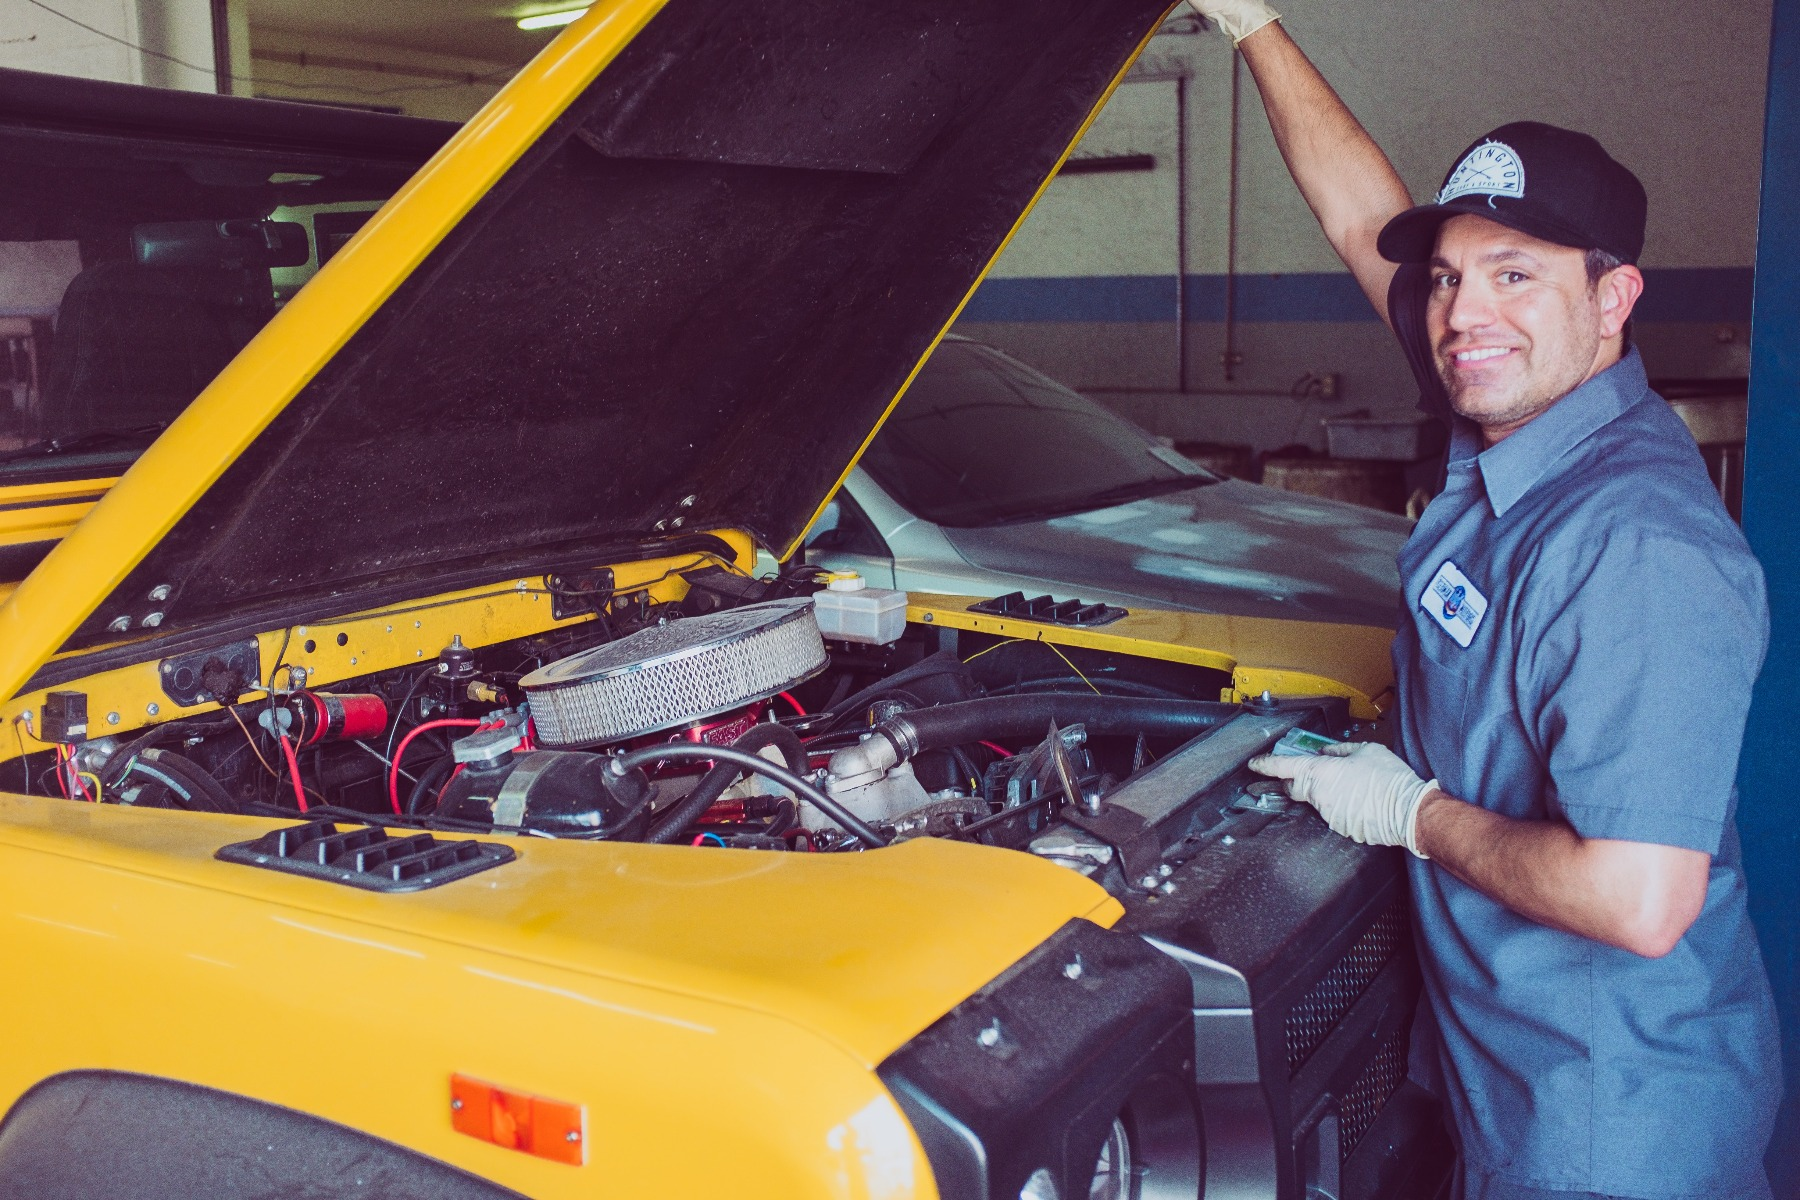 A mechanic works under the hood of a car using heat shrink tubing to combine wires.